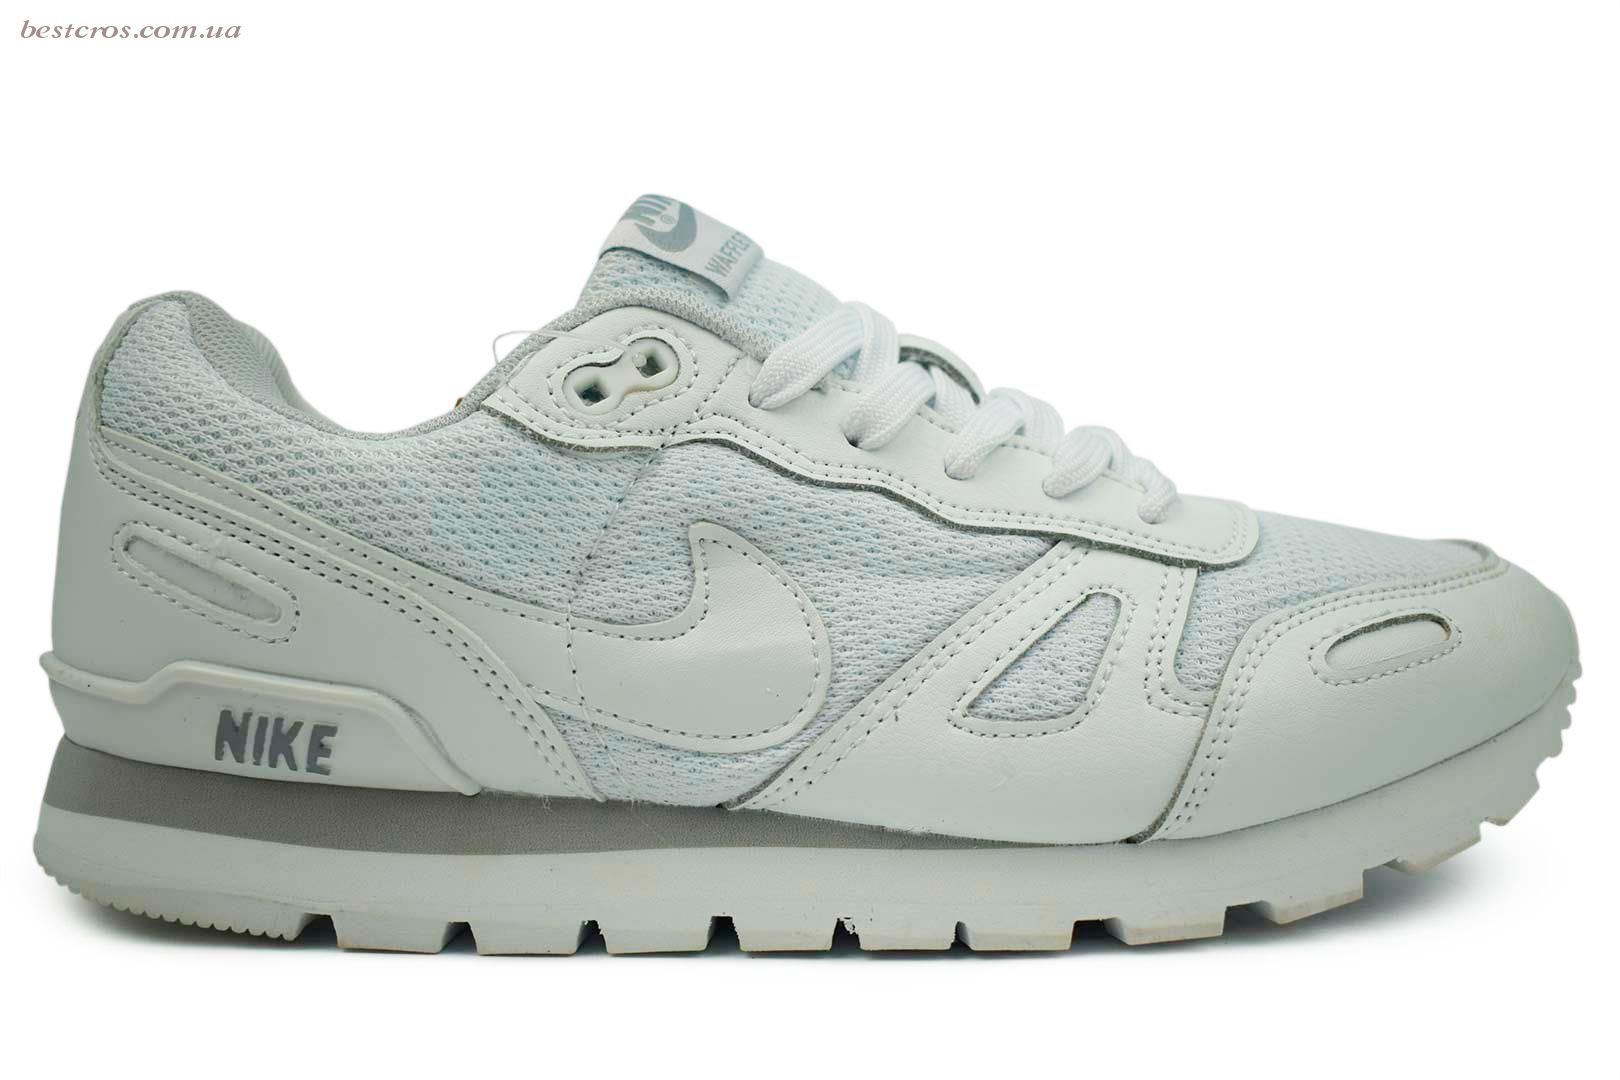 Женские кроссовки Nike Waffle Trainer White